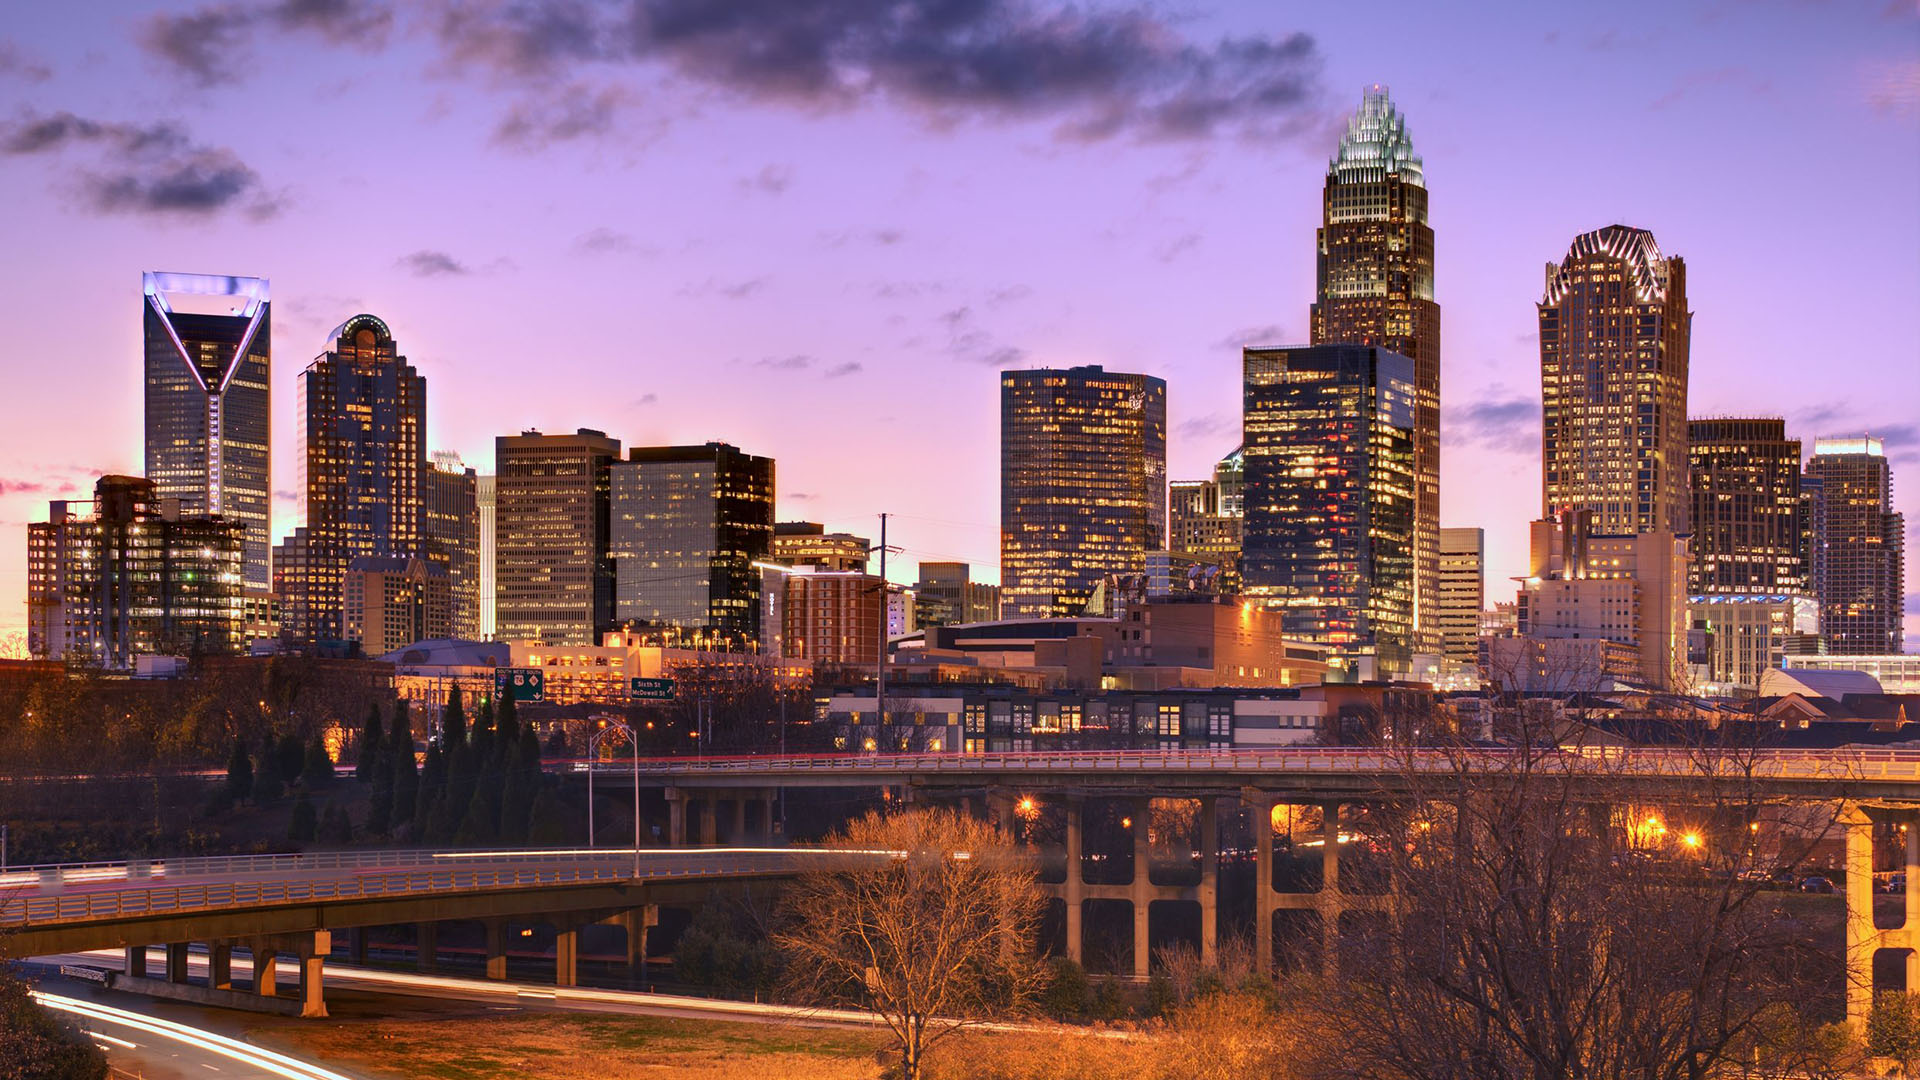 Download Wallpaper Charlotte Nc Gallery